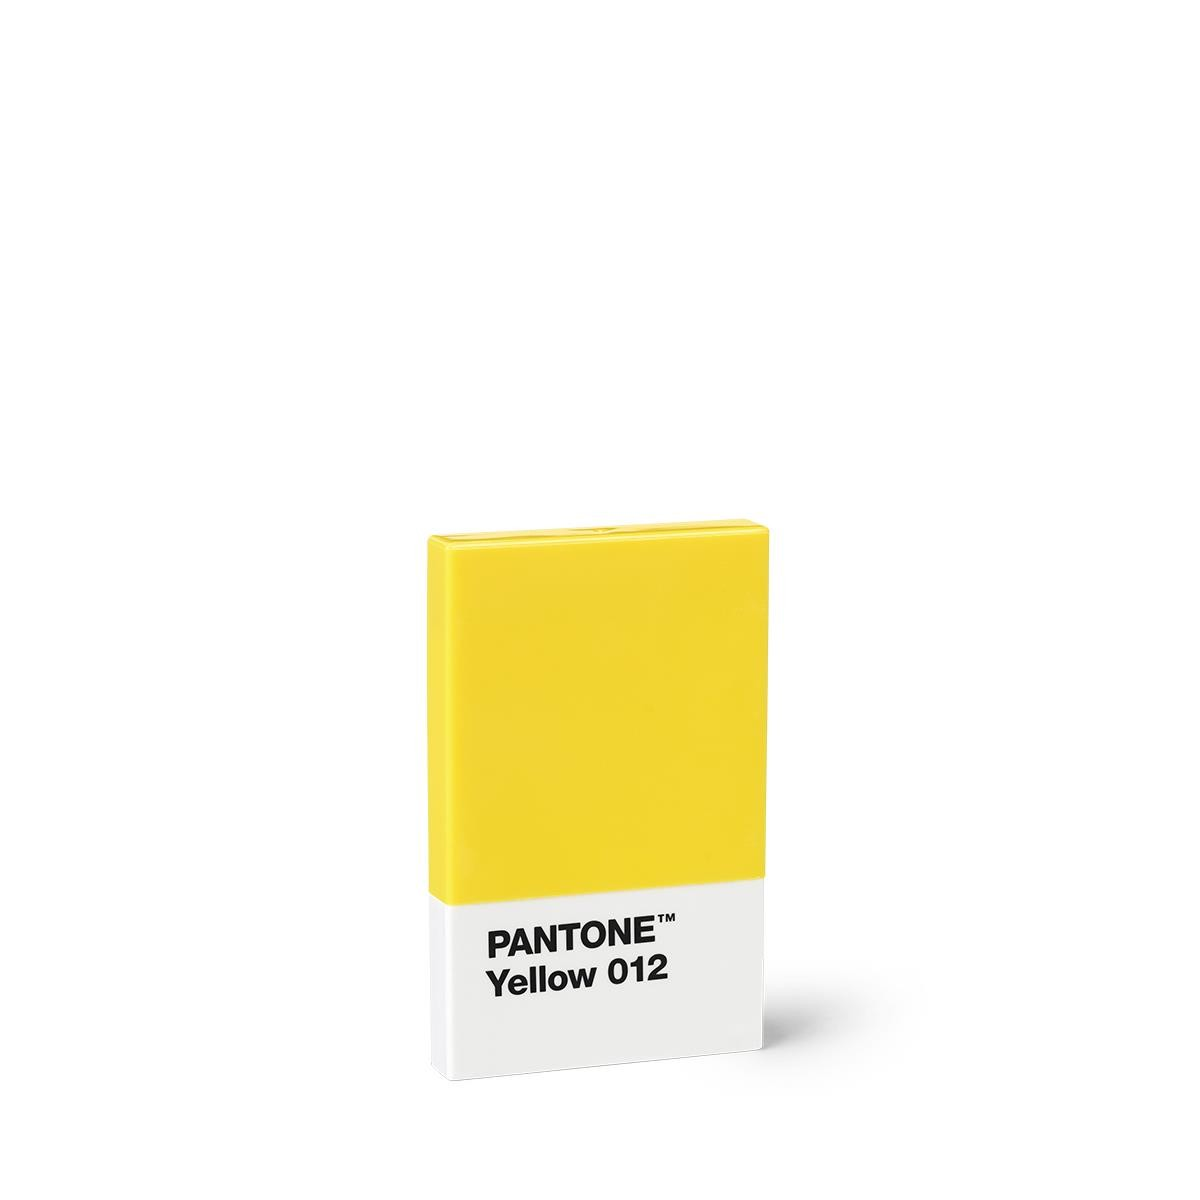 Credit Business Card Holder Yellow 012 Set Of 10 Pieces Pantone Office Products